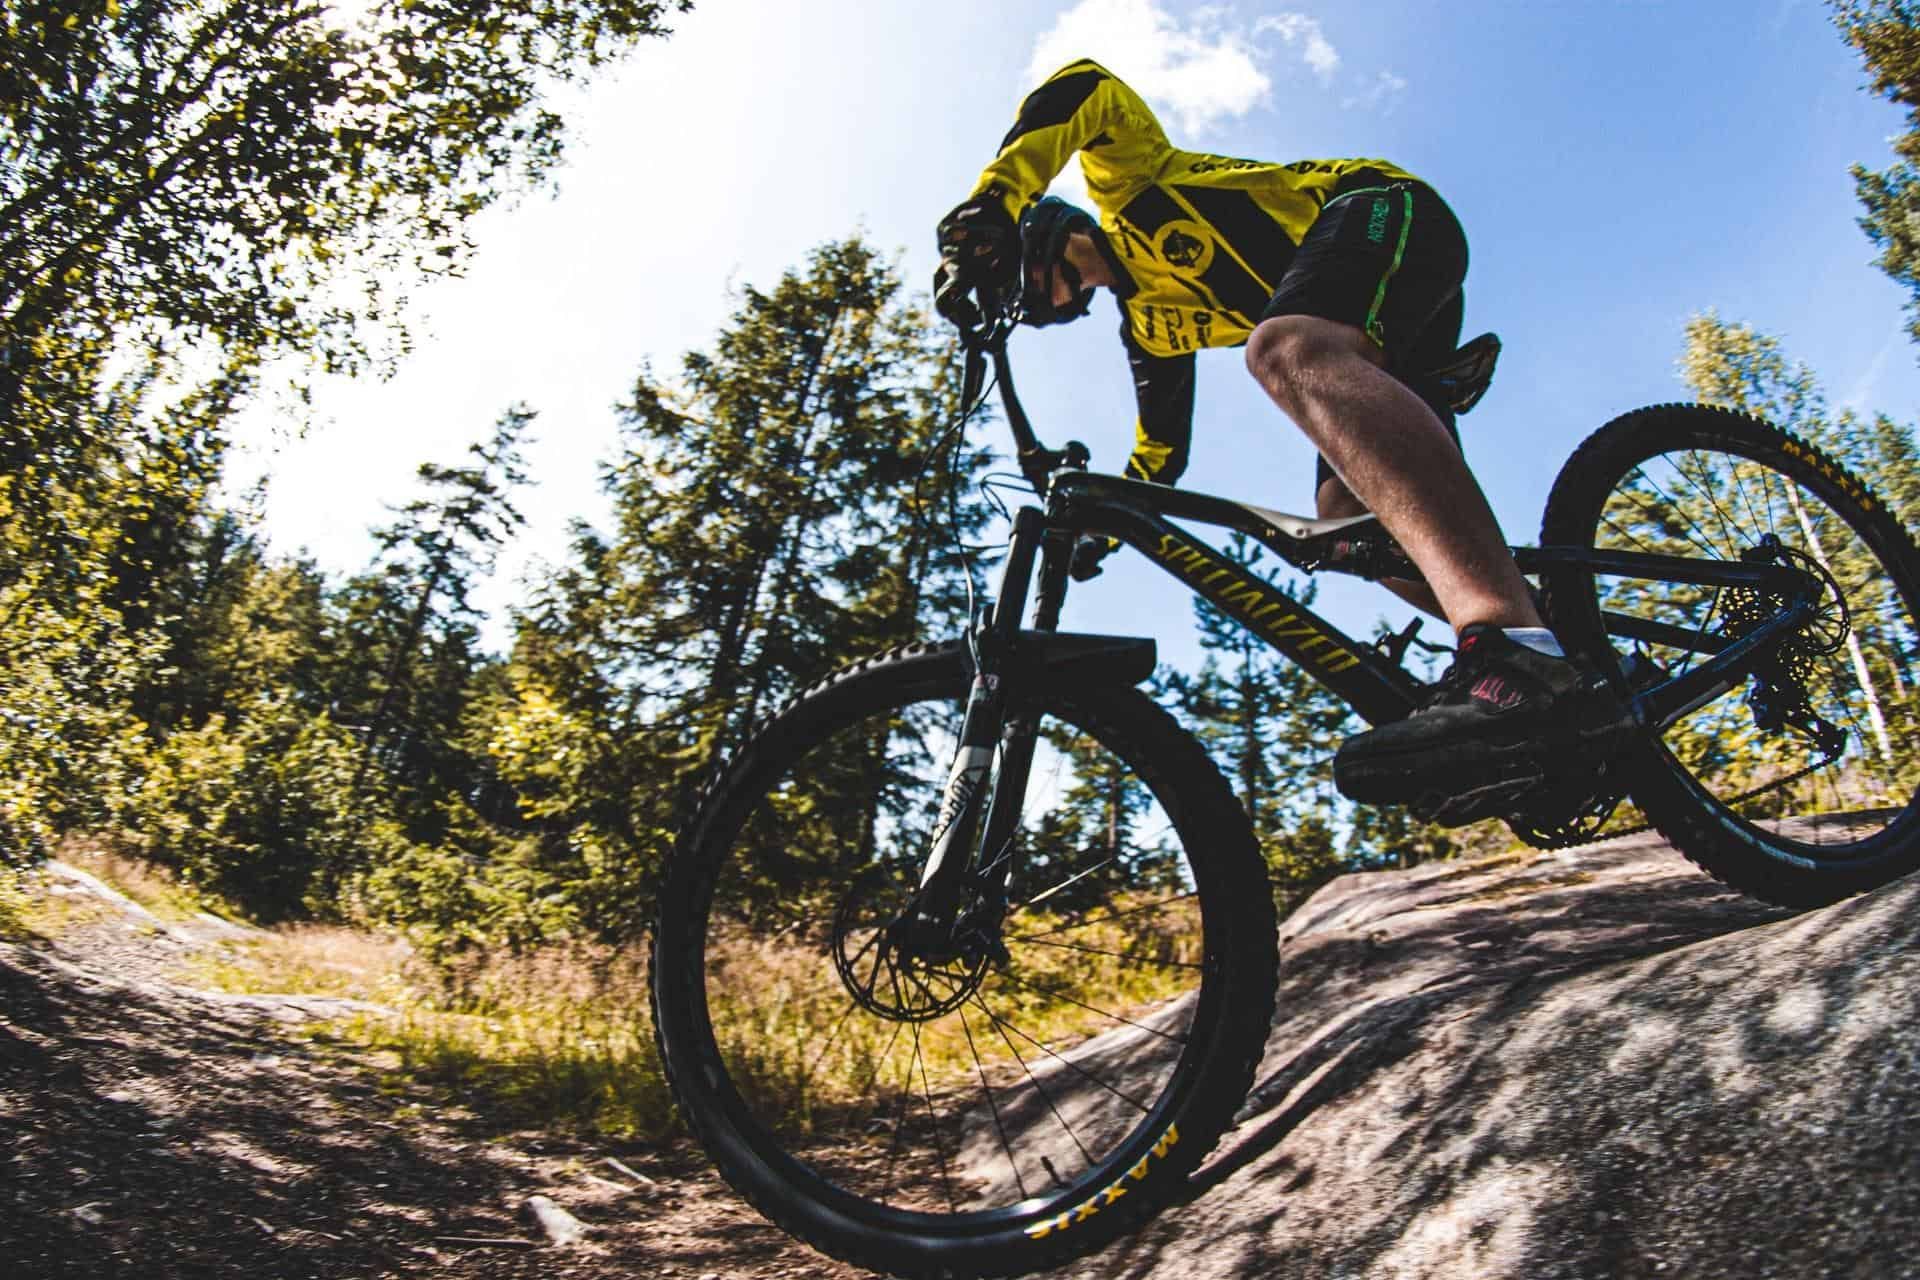 Where are Specialized Bikes Made?